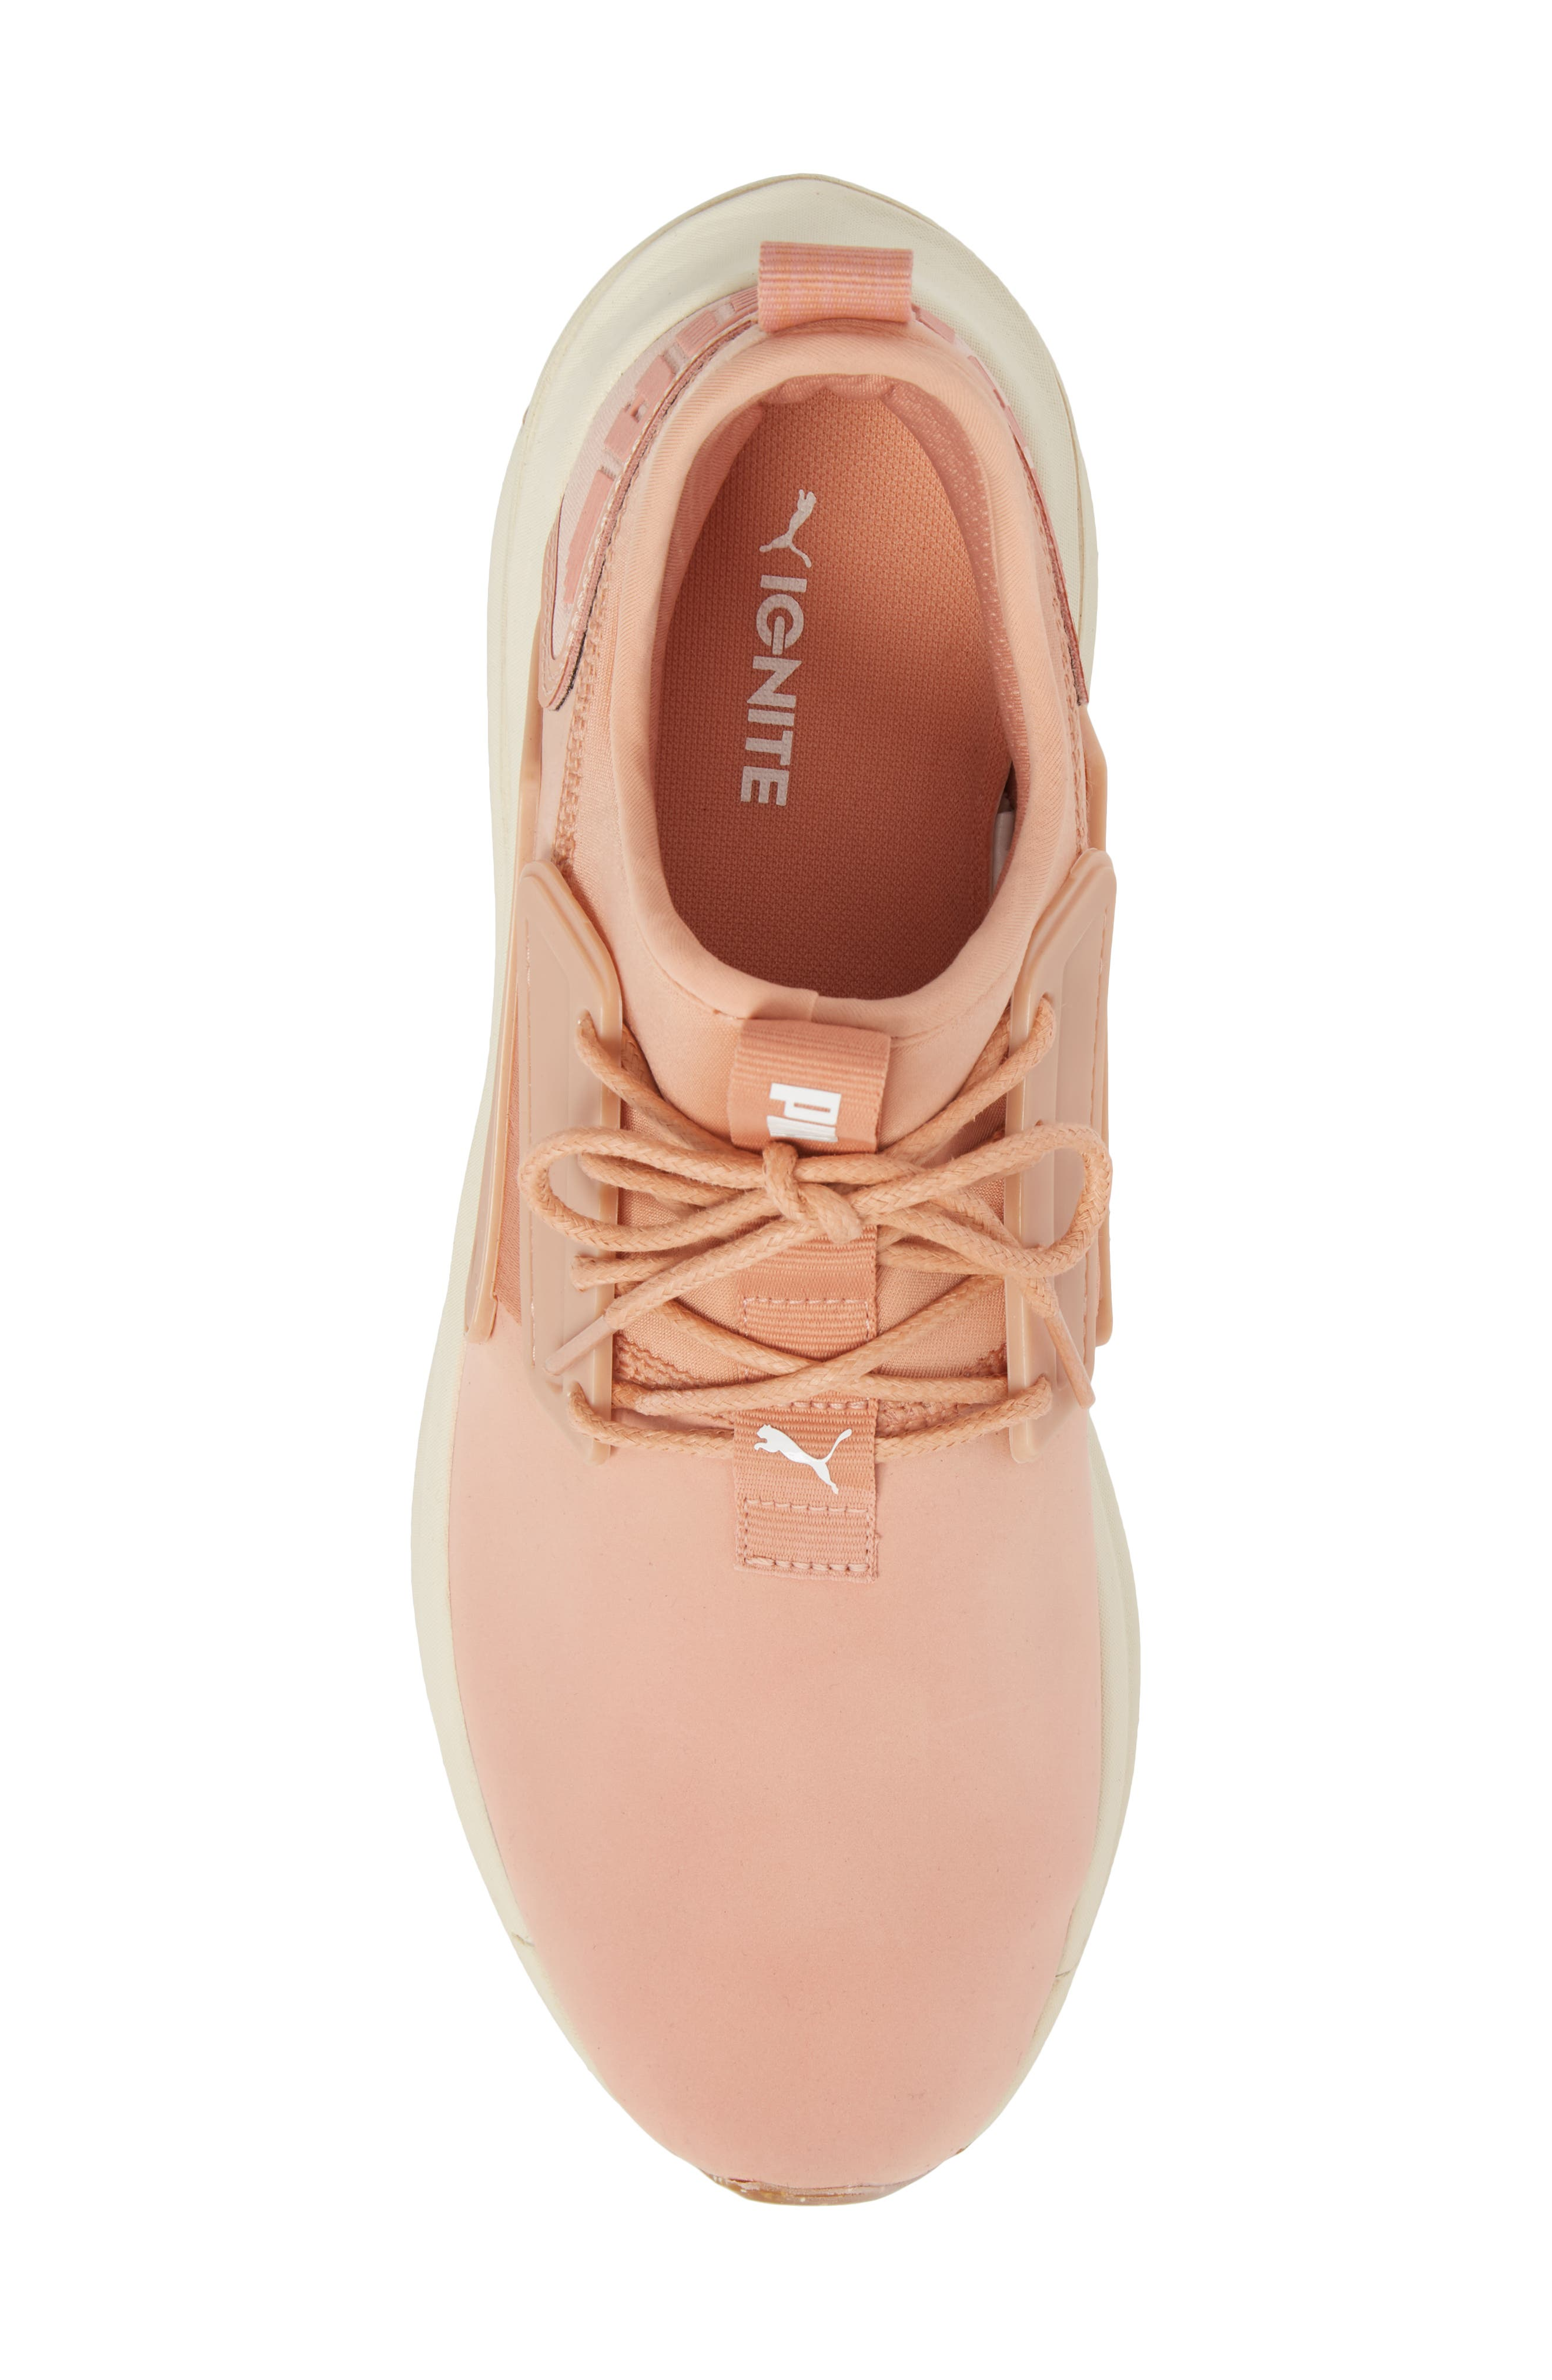 IGNITE Limitless SR Nature Sneaker,                             Alternate thumbnail 5, color,                             MUTED CLAY LEATHER/ SUEDE